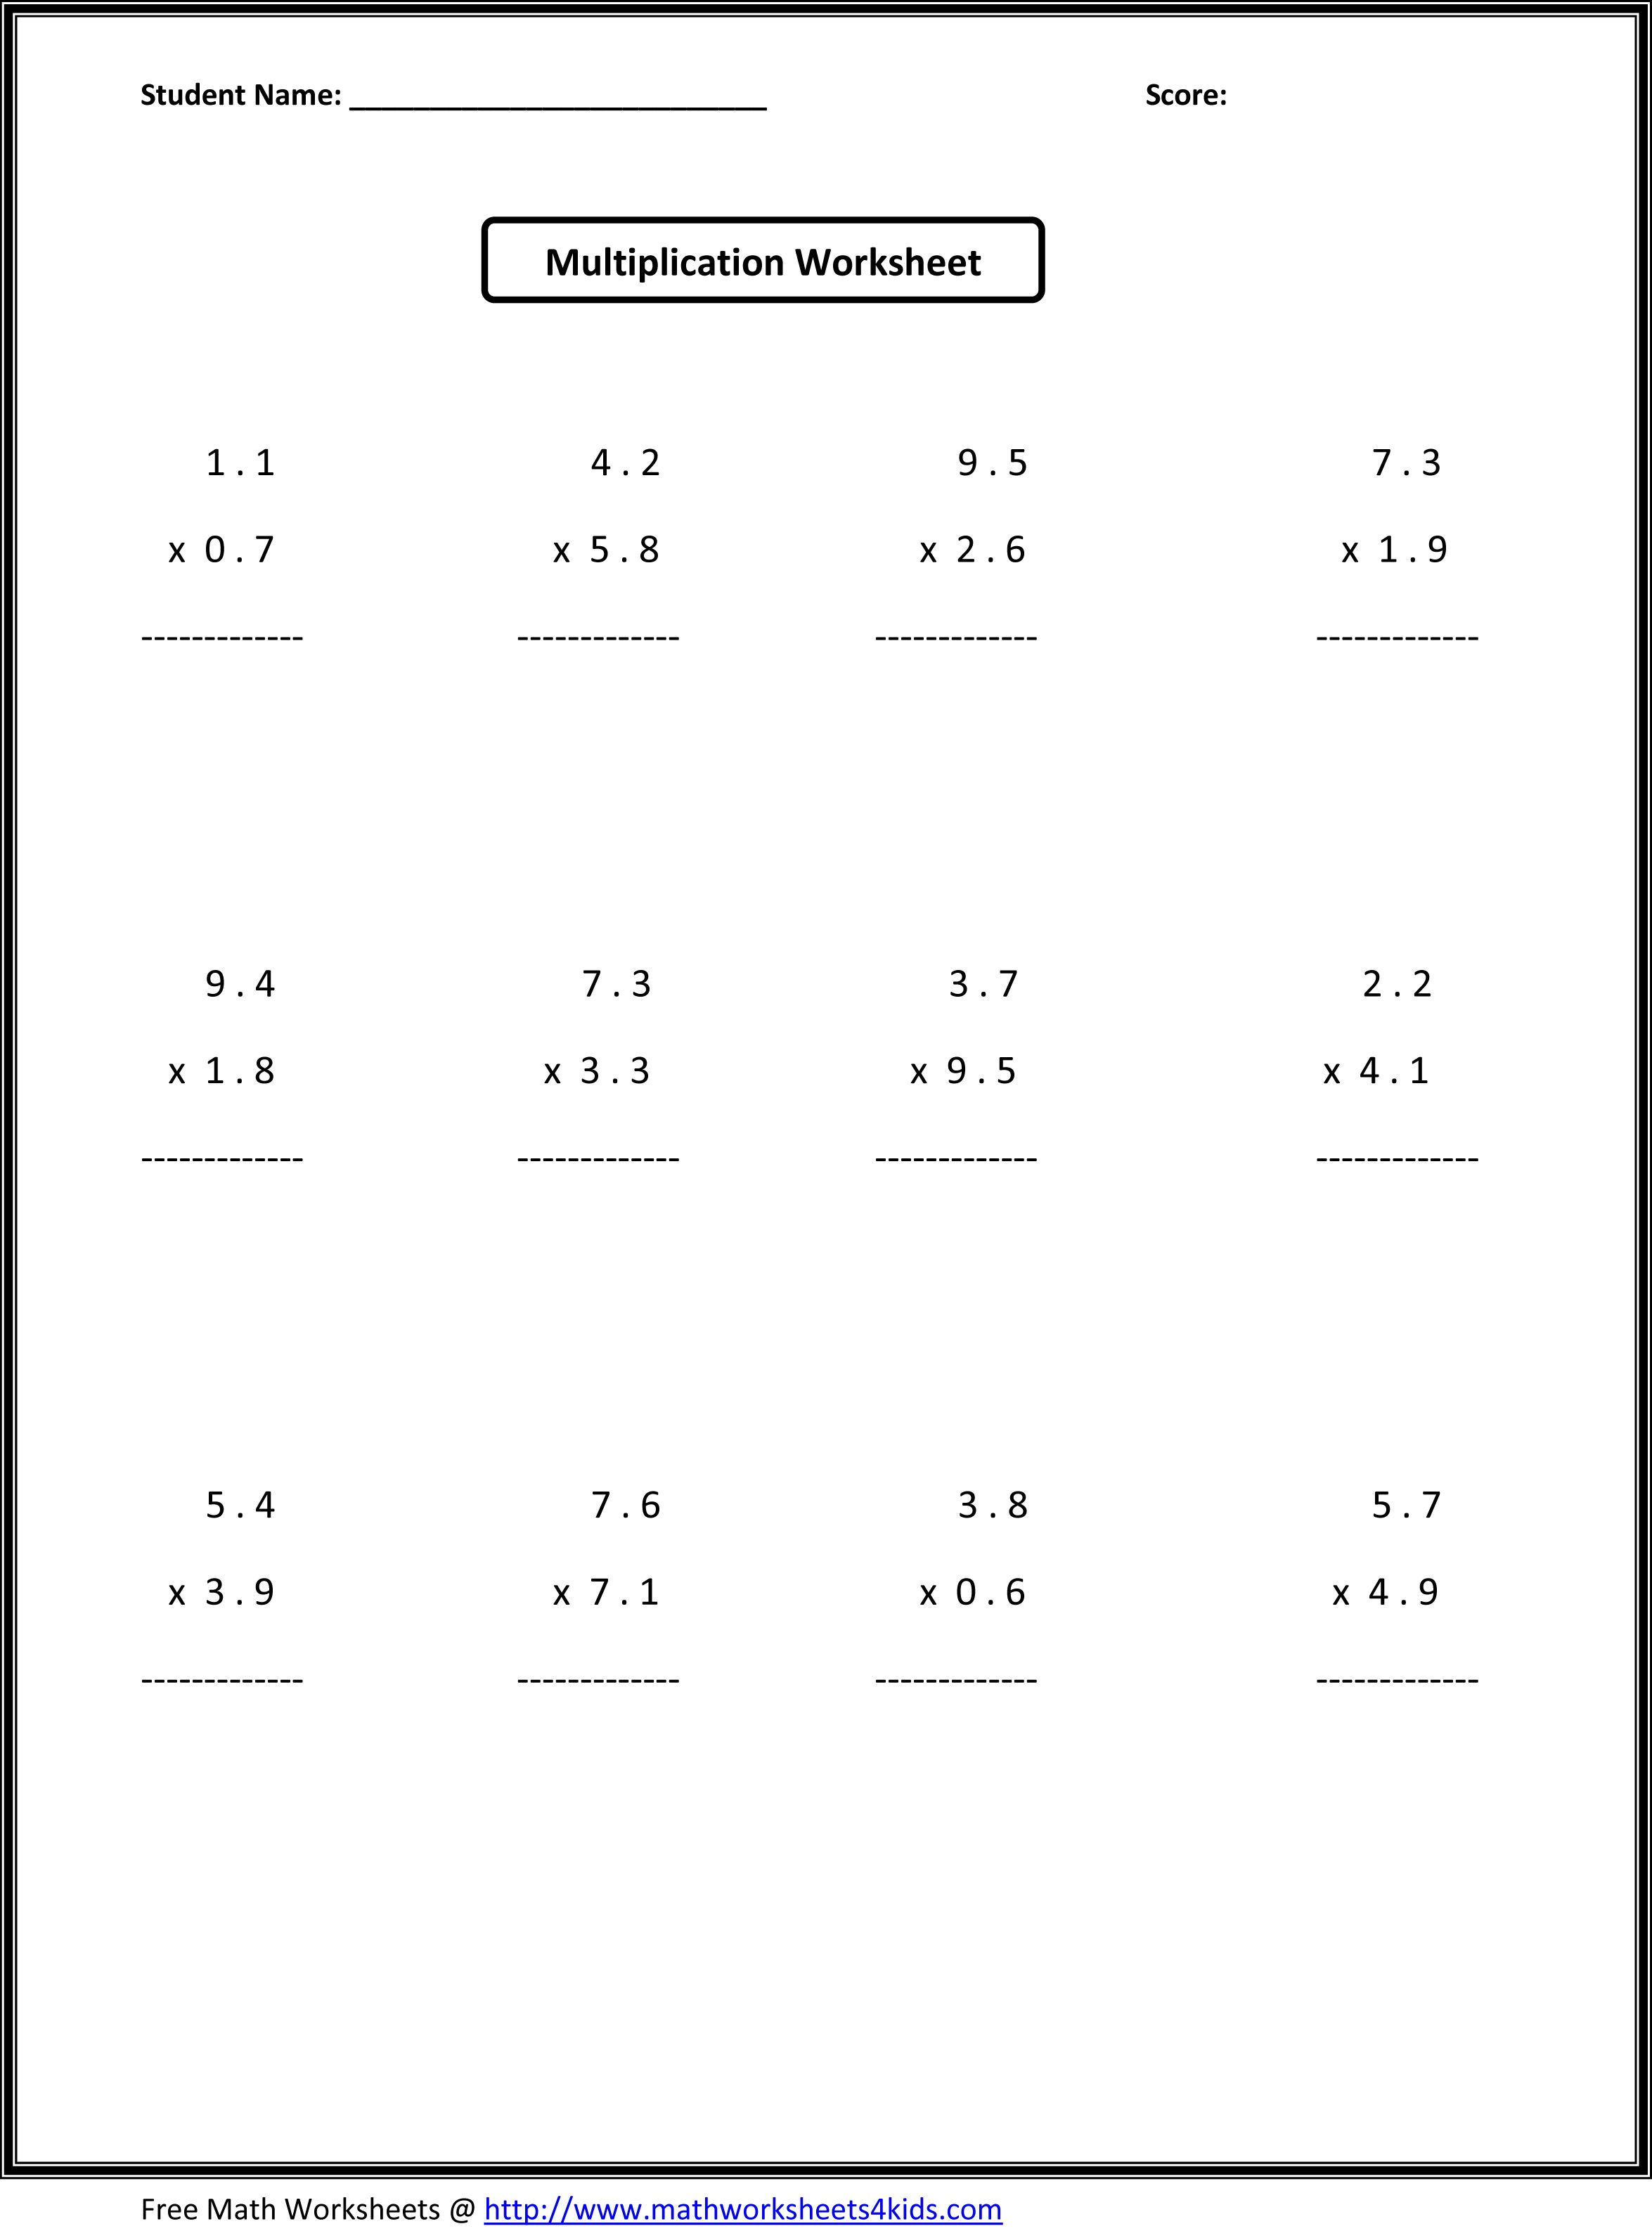 Worksheets Math Printable Worksheets For 6th Grade 7th grade math worksheets value absolute sixth worksheets